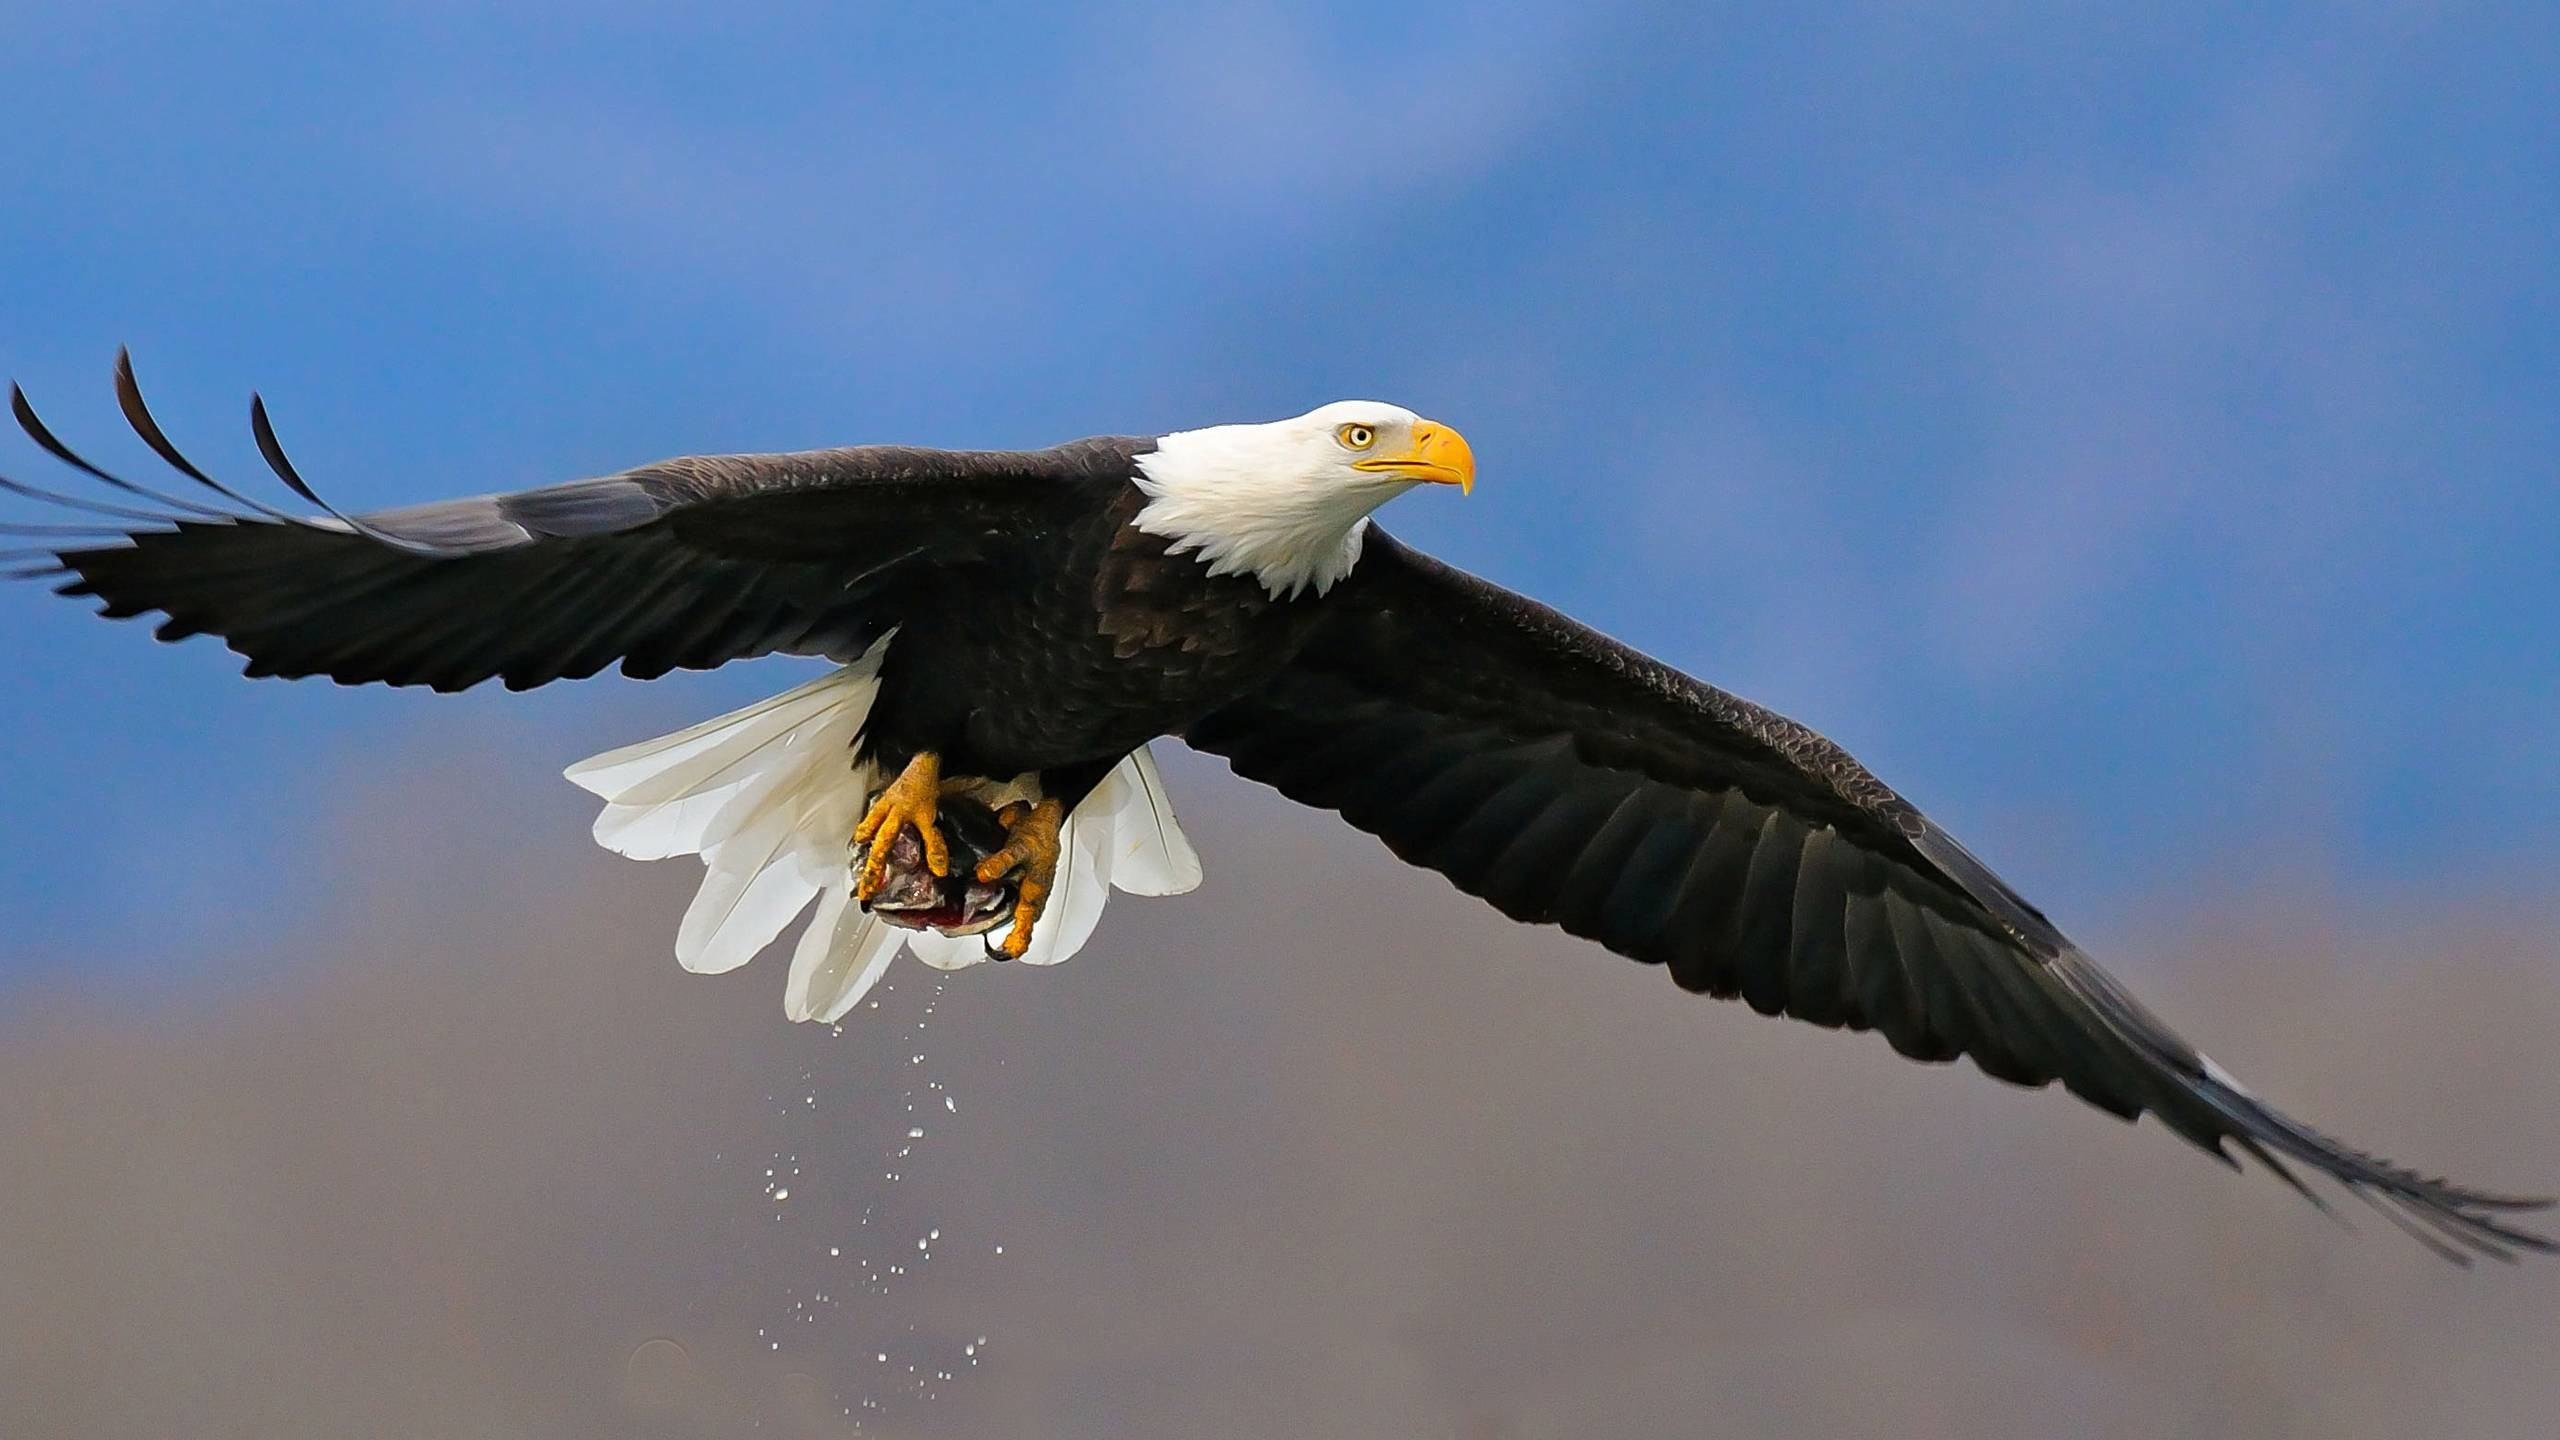 2560x1440 Bald Eagle The Beautiful Bird HD Wallpaper